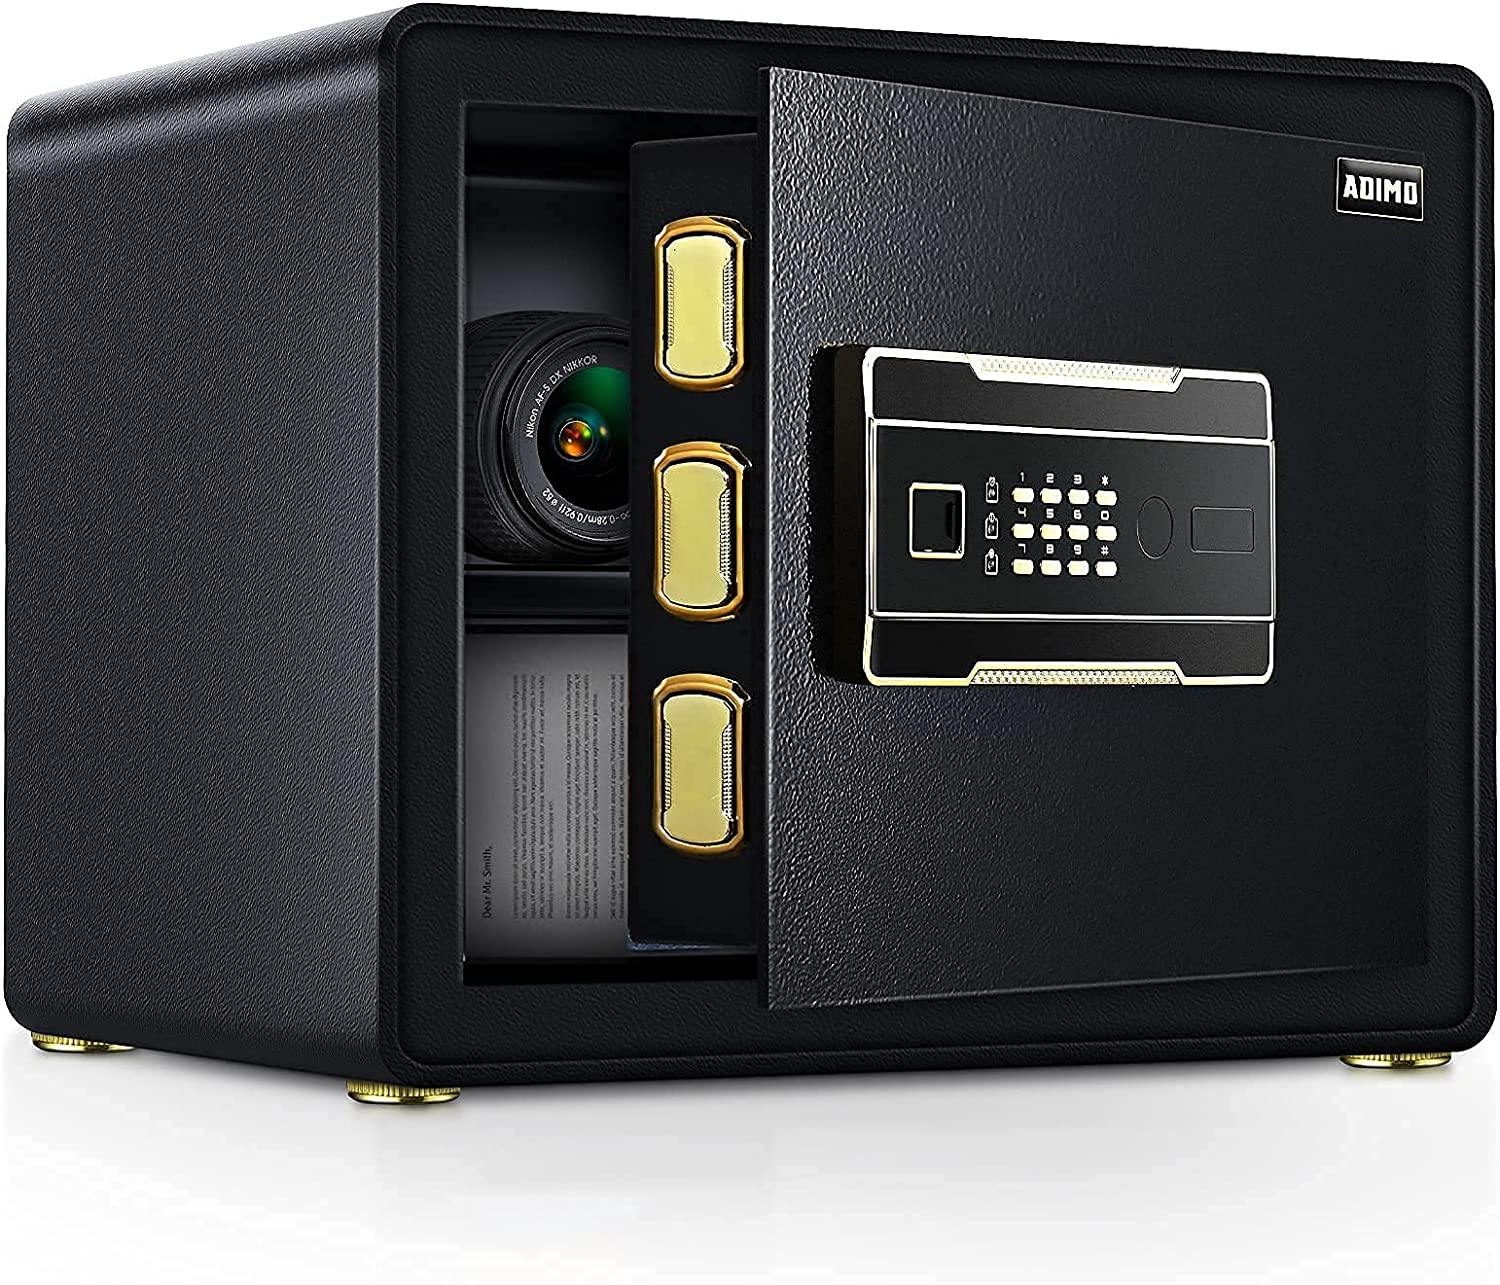 ADIMO Safe Box with 1.23 Cubic Feet, Safe Cabinet with 2 Master Key, Sensitive Alarm System to Protect Your Cash, Jewelry, Documents, Safe and Locked Box for Home&Office